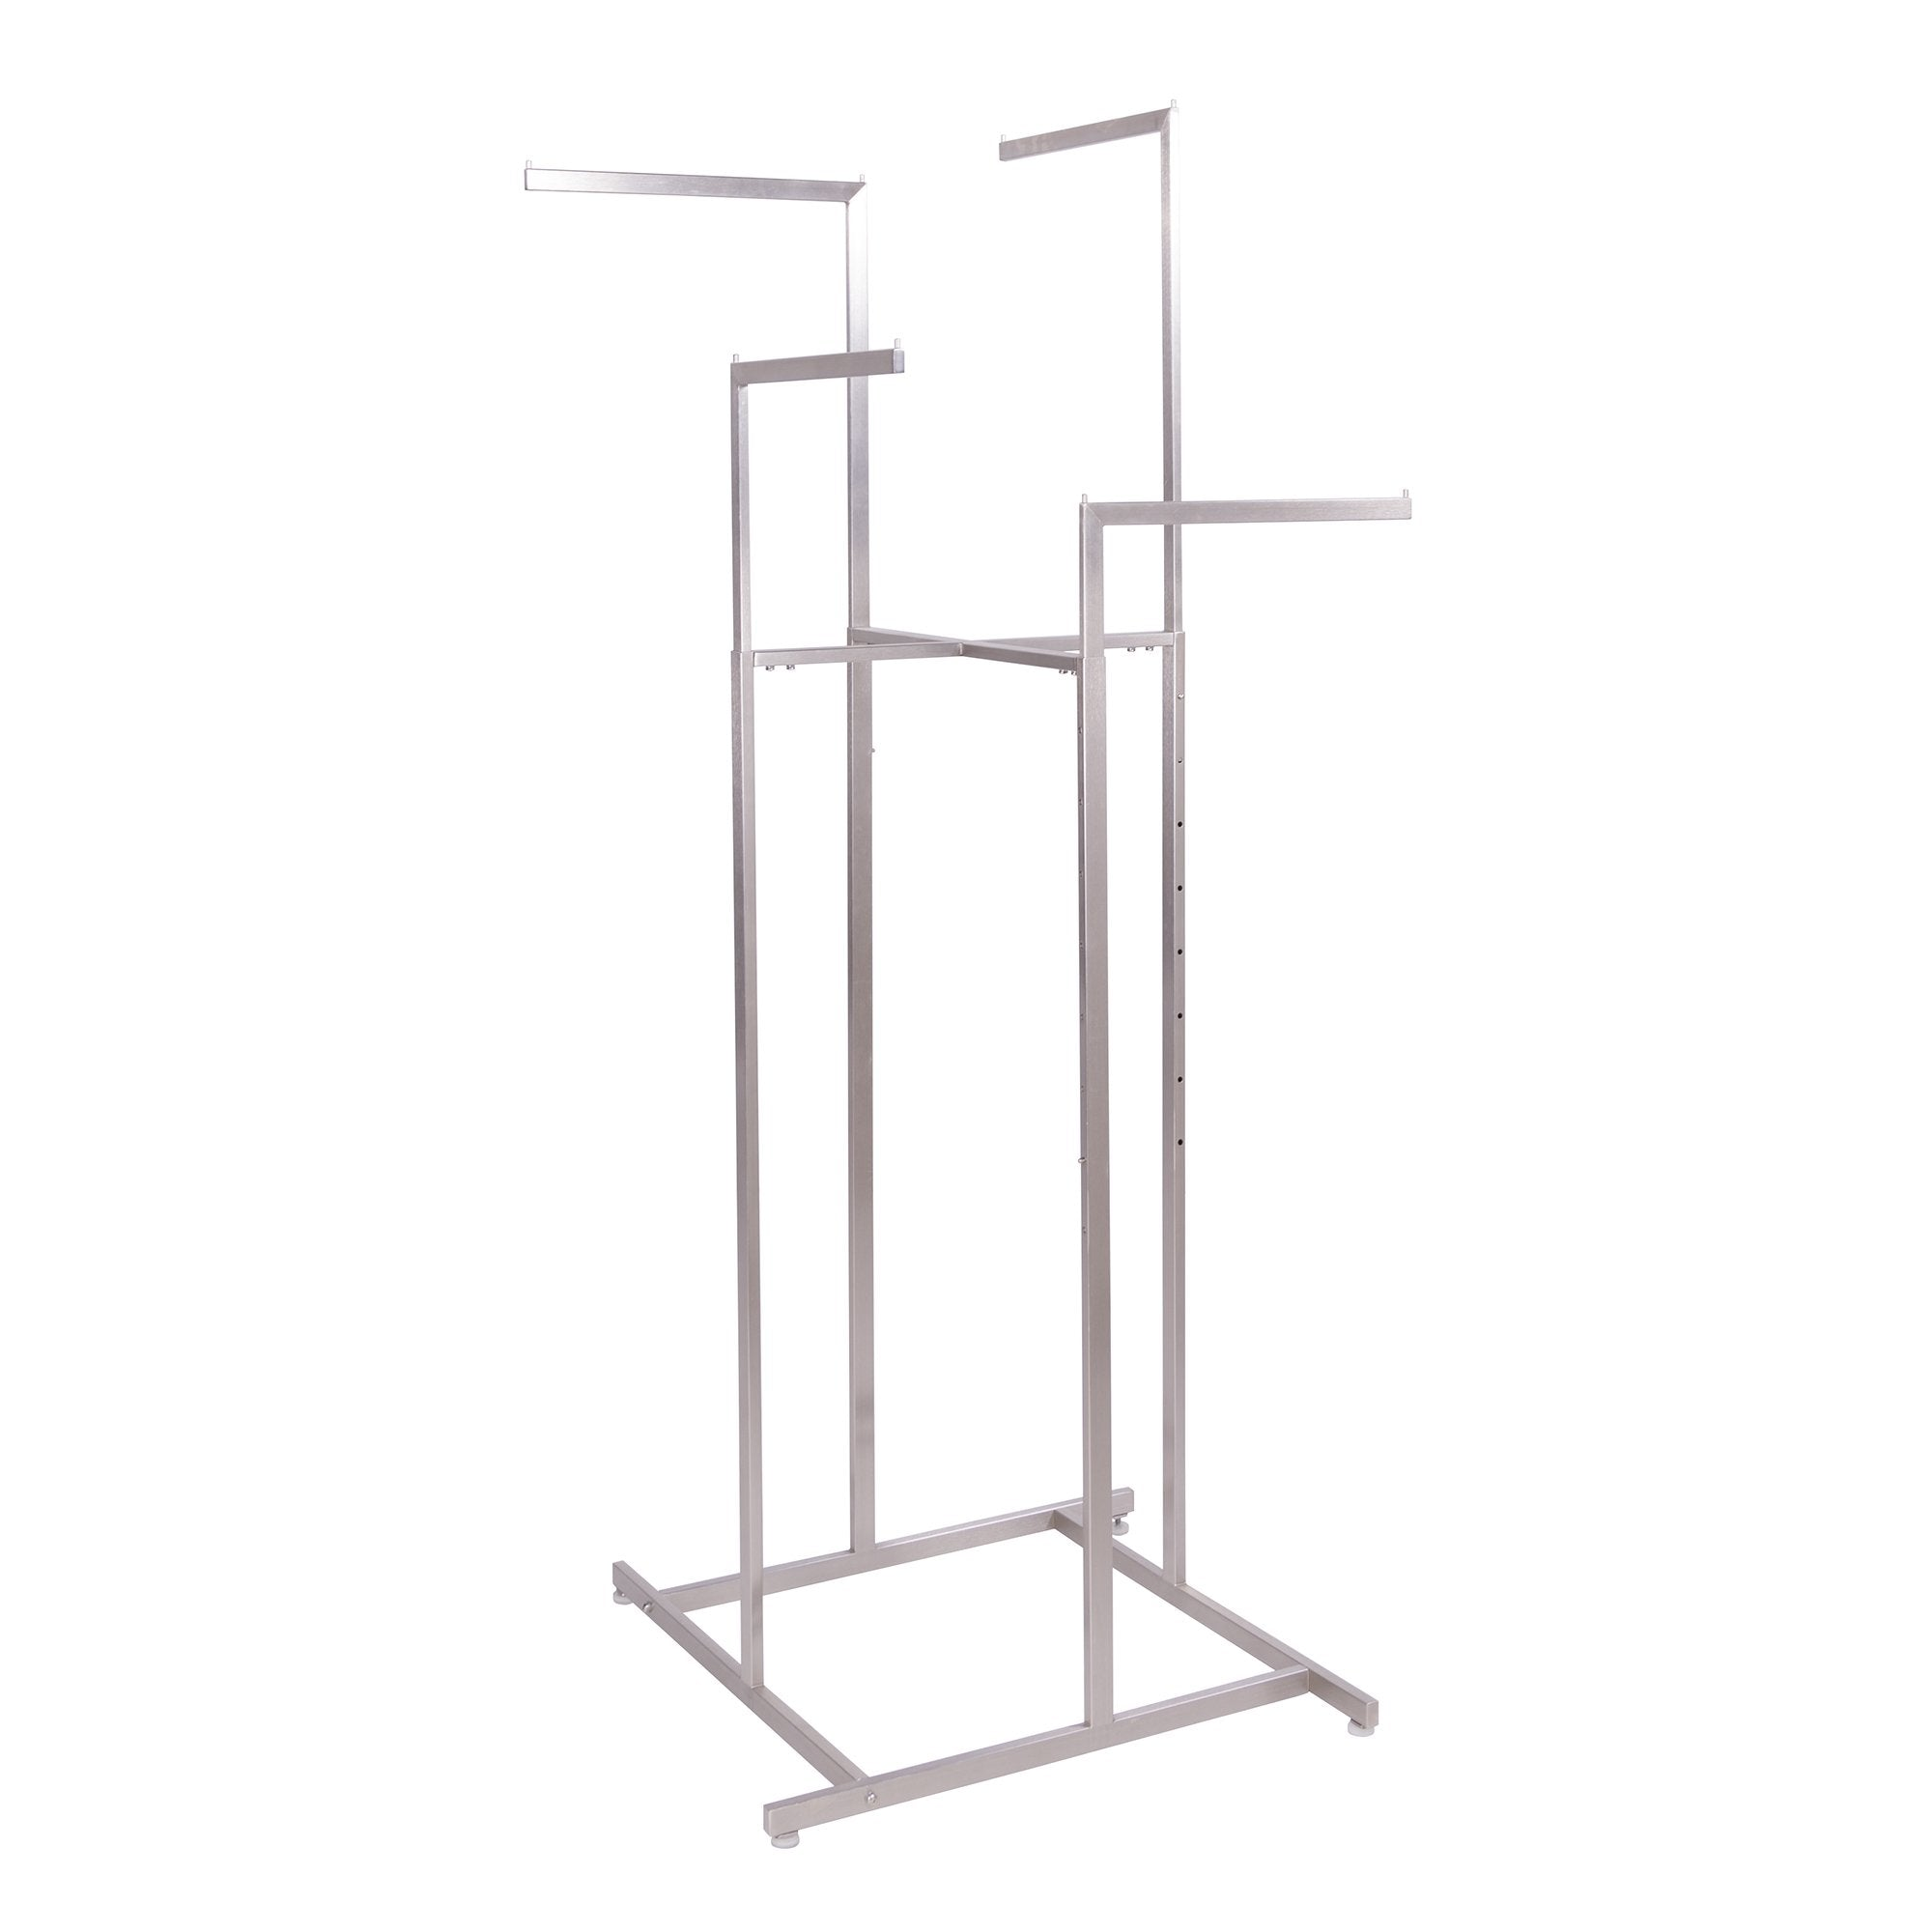 Rental 4-Way Rack with Straight Arms